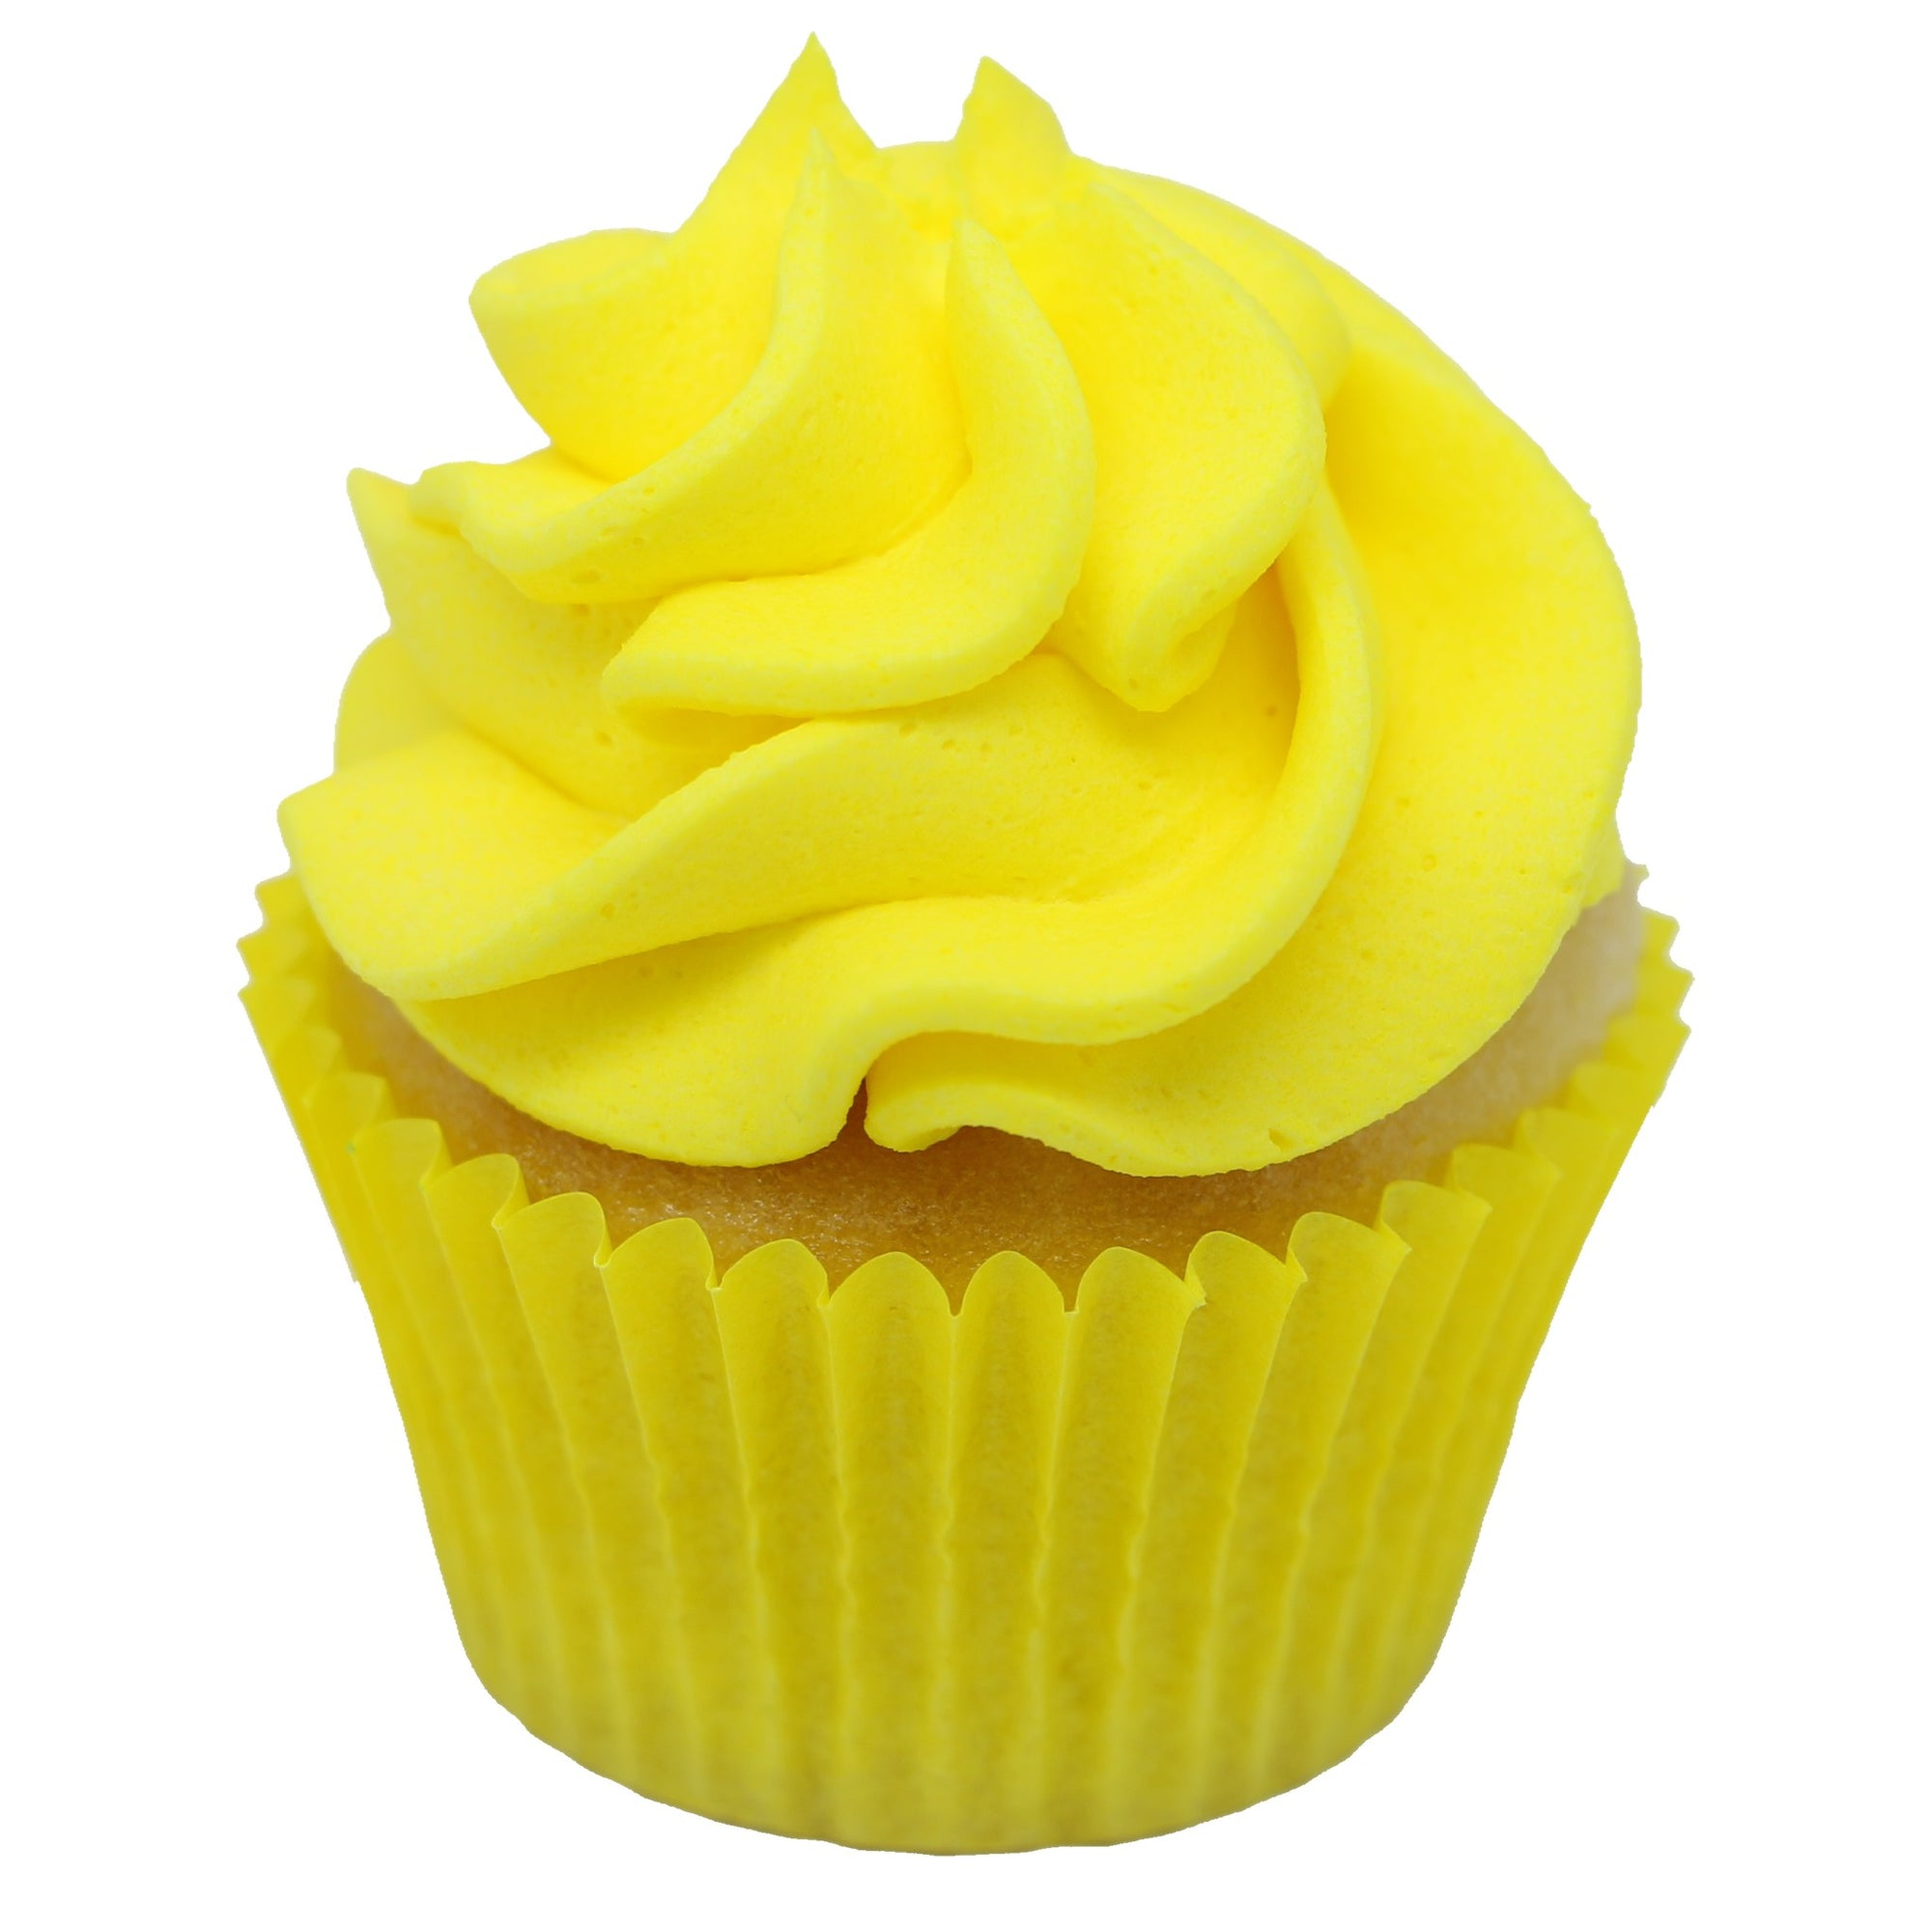 Mini Cupcake - Yellow - Treats2eat - Wedding & Birthday Party Dessert Catering Near Me